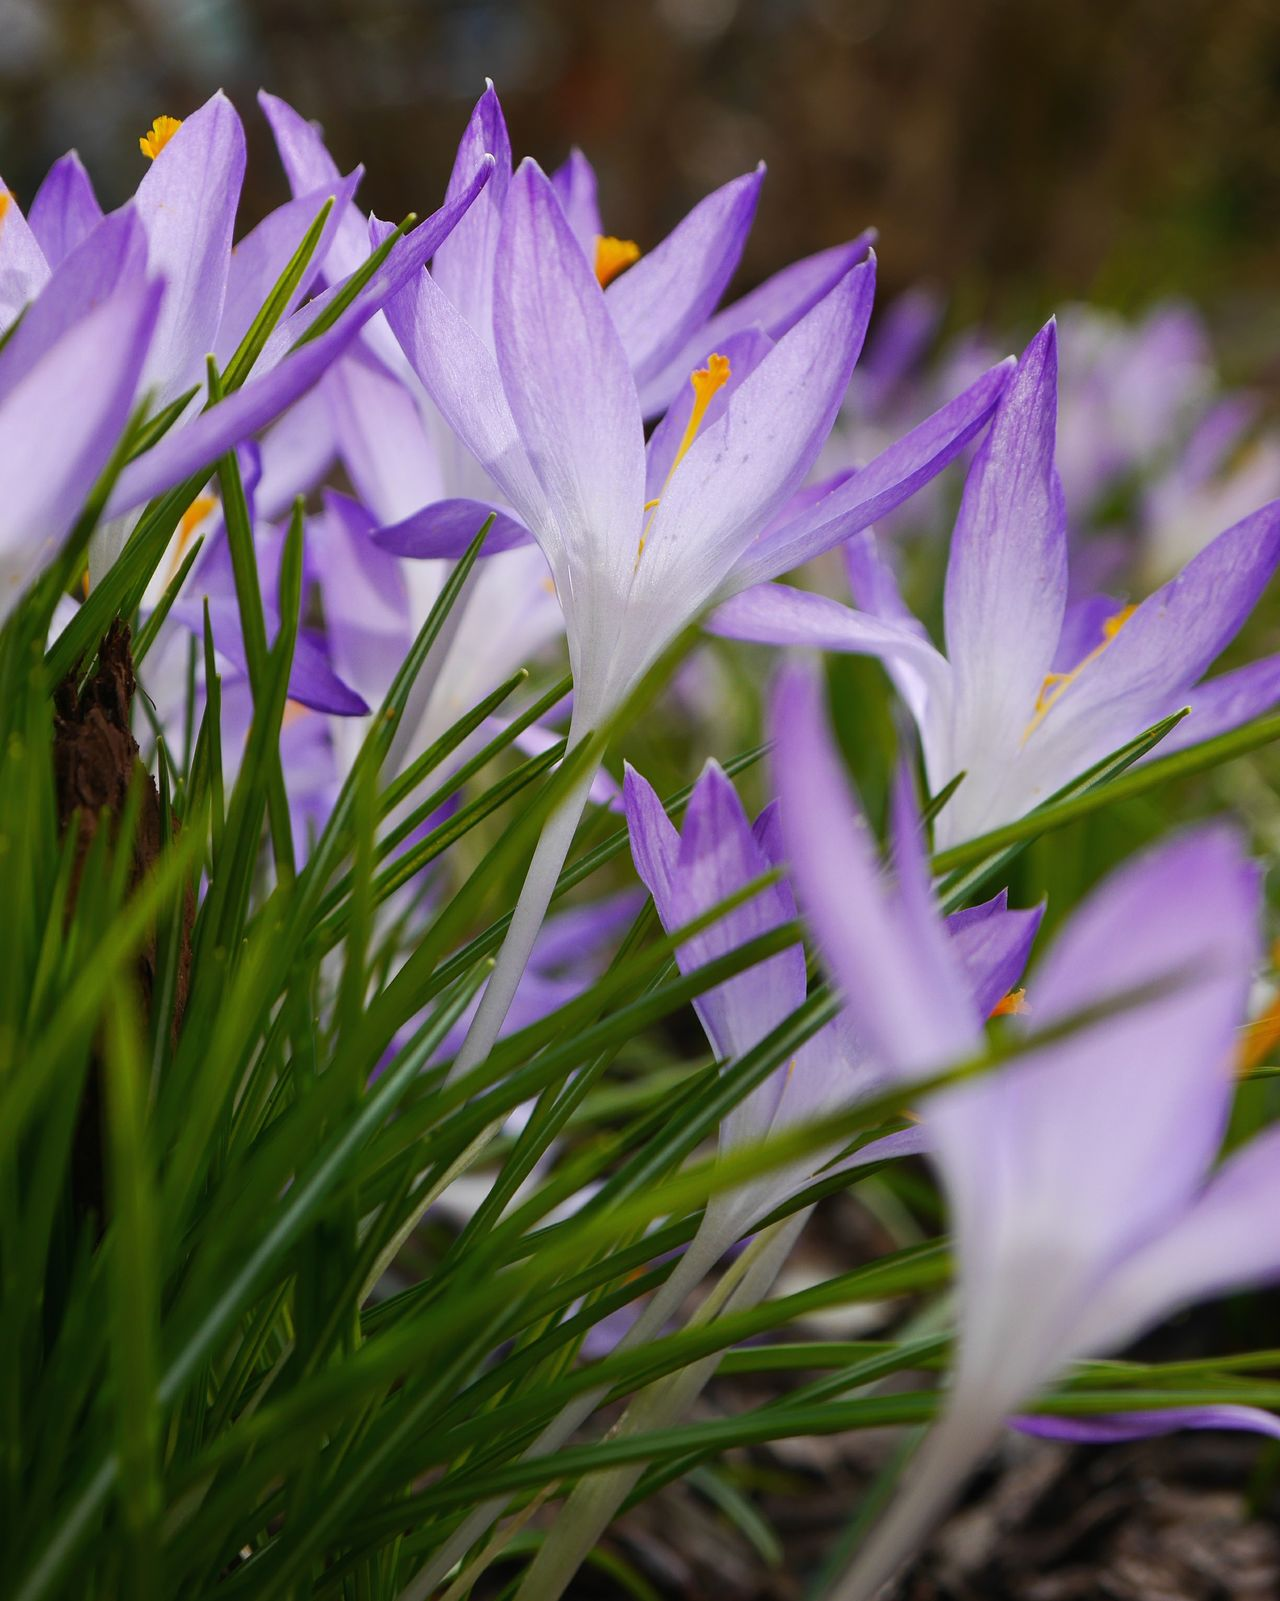 Some Krokus... Spring has sprung... Purple Flower Growth Nature Close-up Beauty In Nature Plant Freshness Fragility Flower Head Outdoors Grass No People Day Crocus